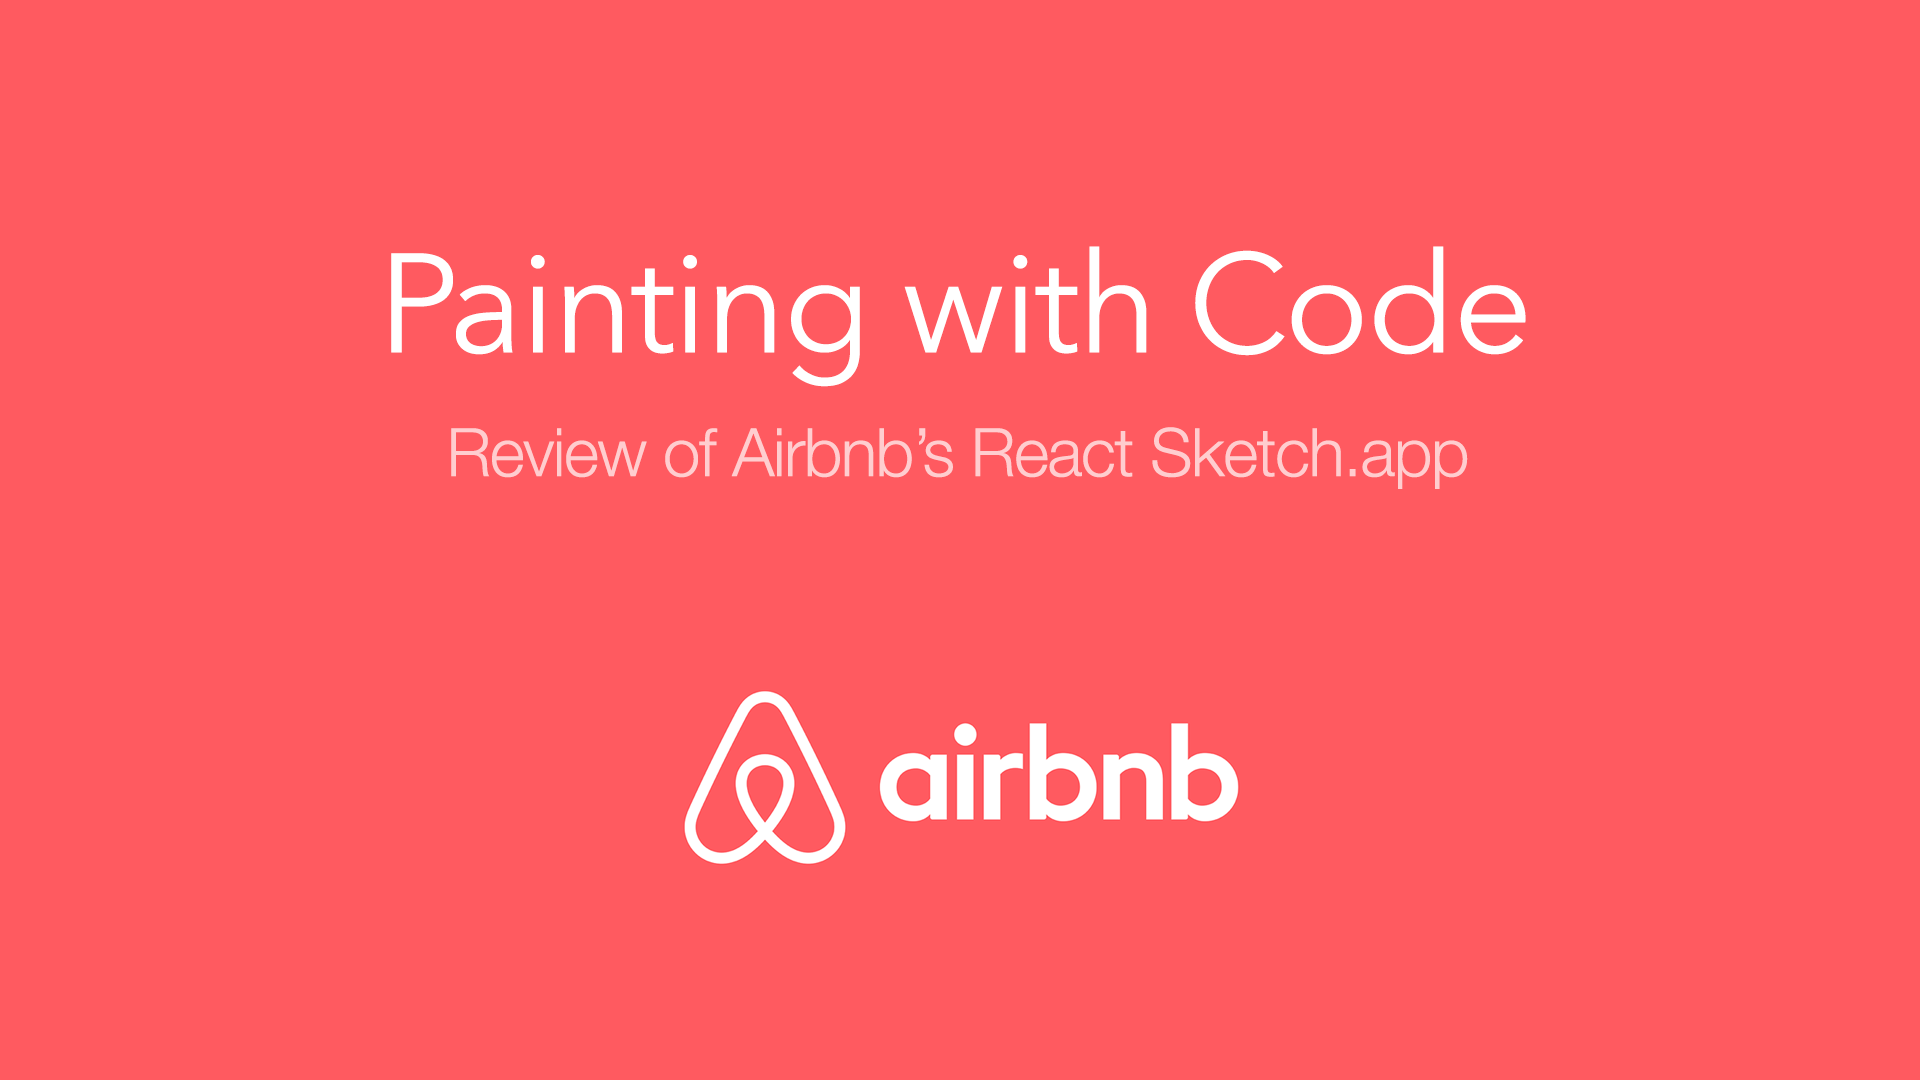 Painting with code - review of Airbnb's React Sketch app